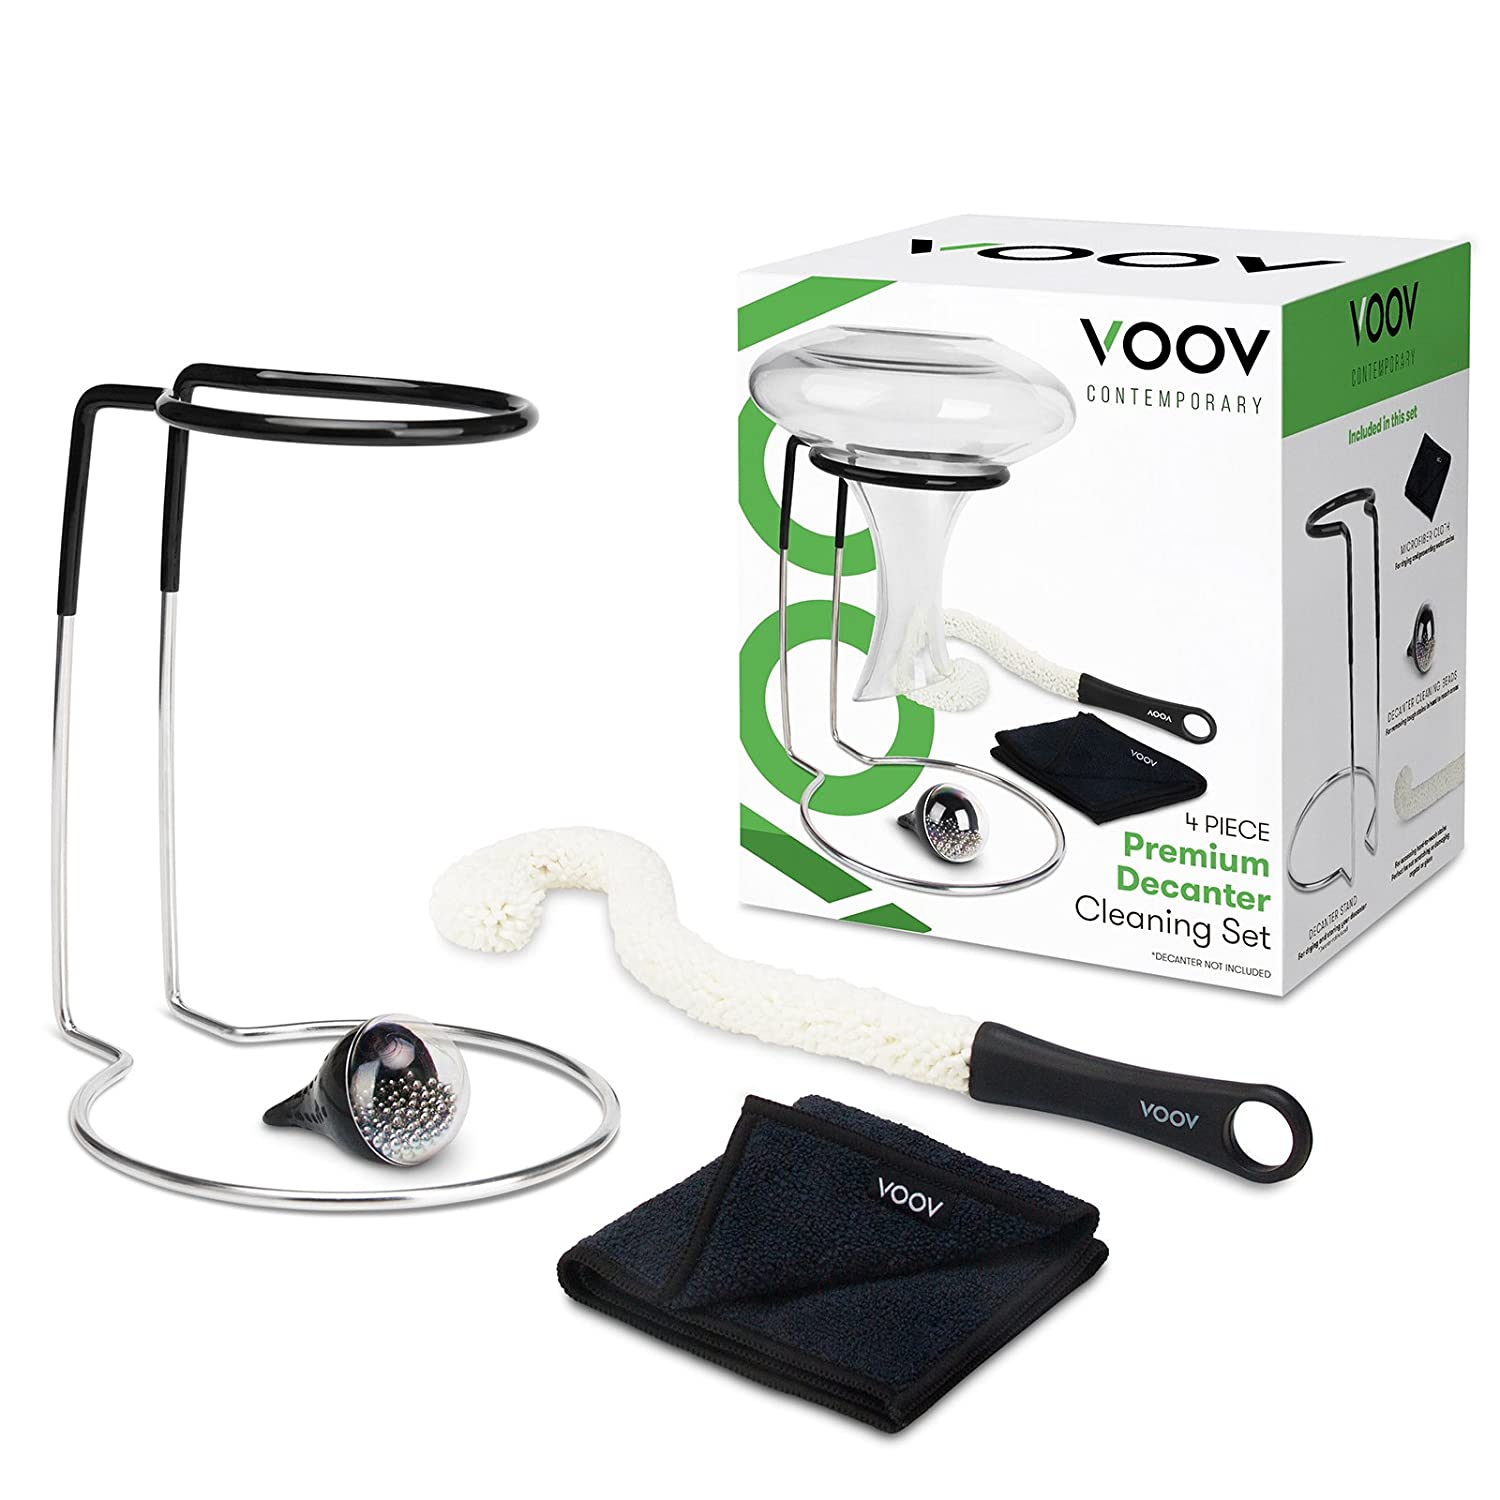 NEW! VOOV Contemporary 4 Piece Premium Decanter Cleaning Set with Drying Stand, Cleaning Beads, Cleaning Brush and Microfiber Drying Cloth (Decanter Not Included) ZFDC-001